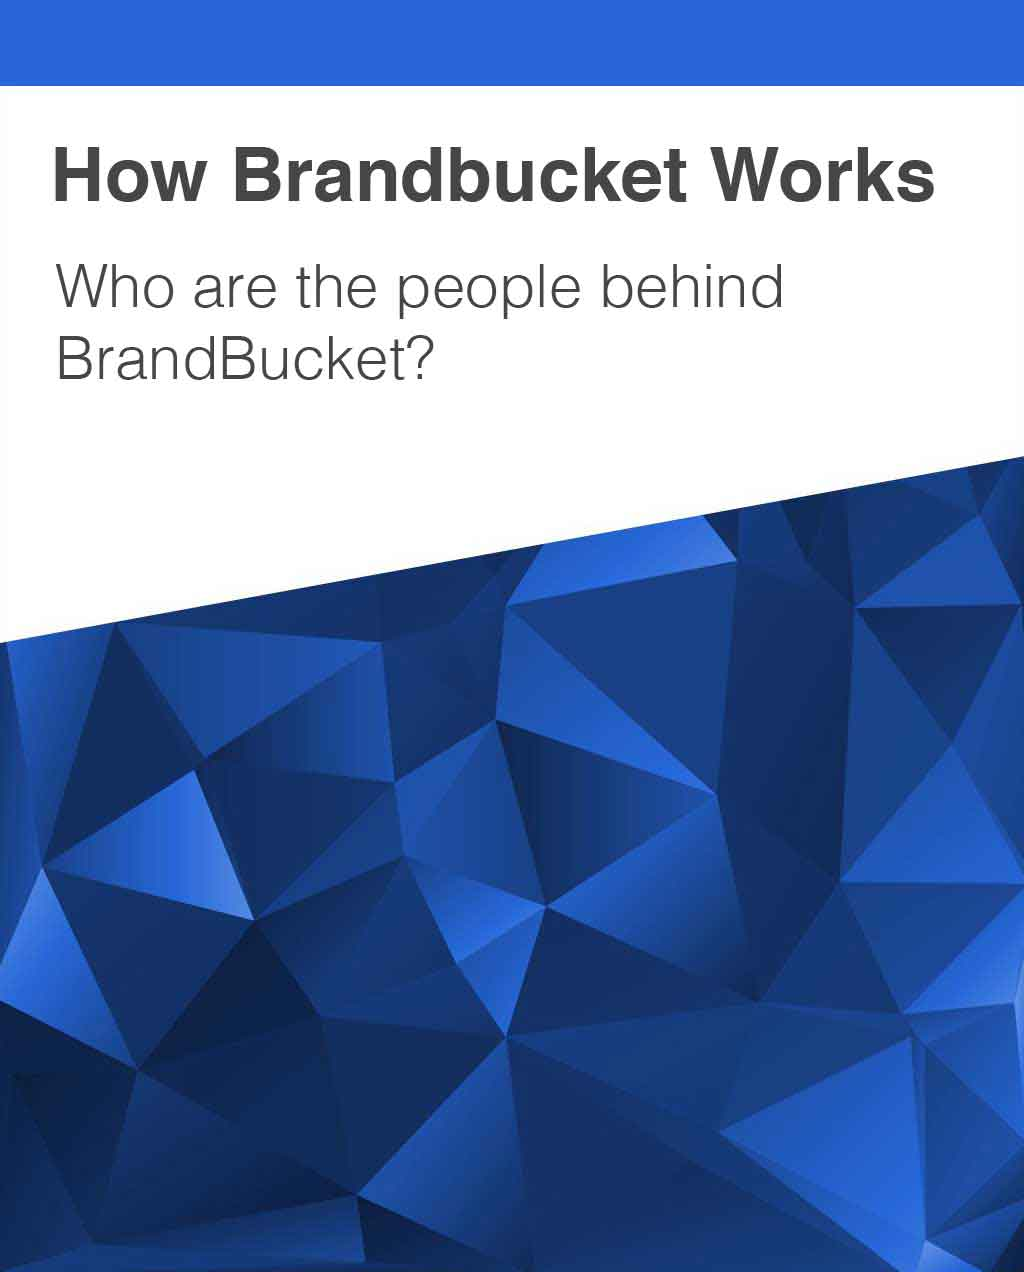 People Behind Brandbucket